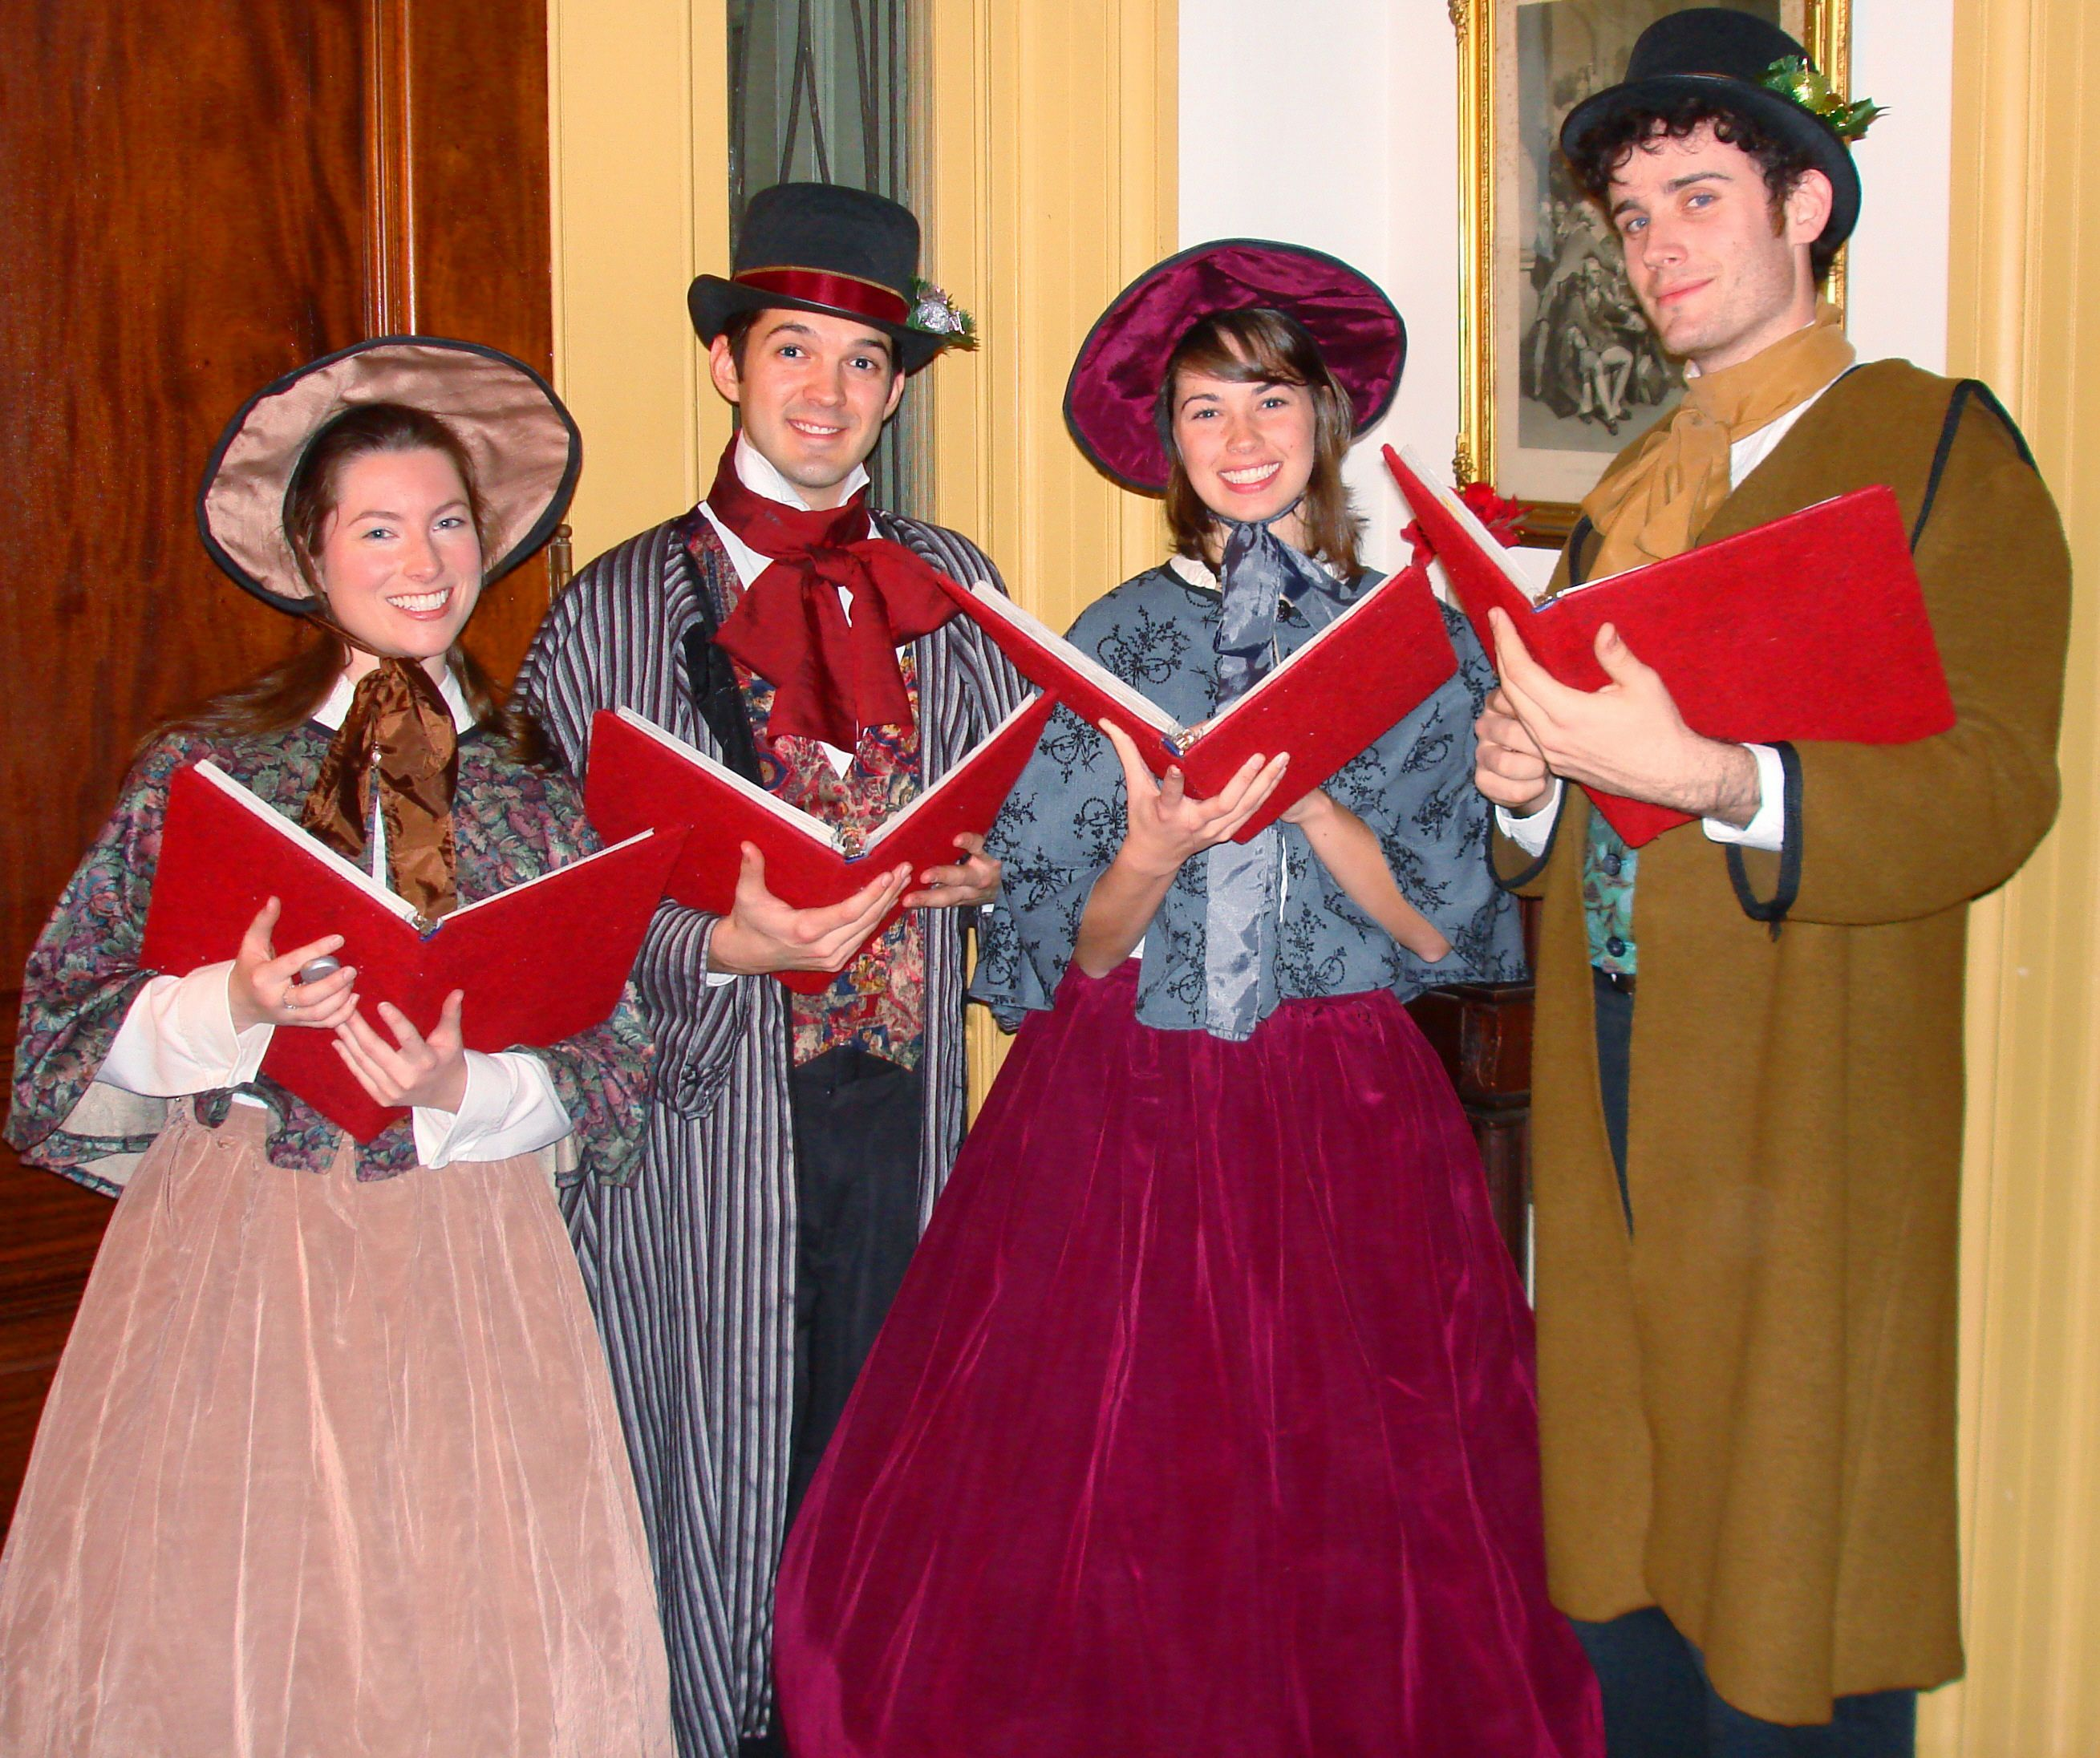 Victorian Christmas Carolers Decorations: This Photo Of A Group Of Victorian Carol Singers, Gives A